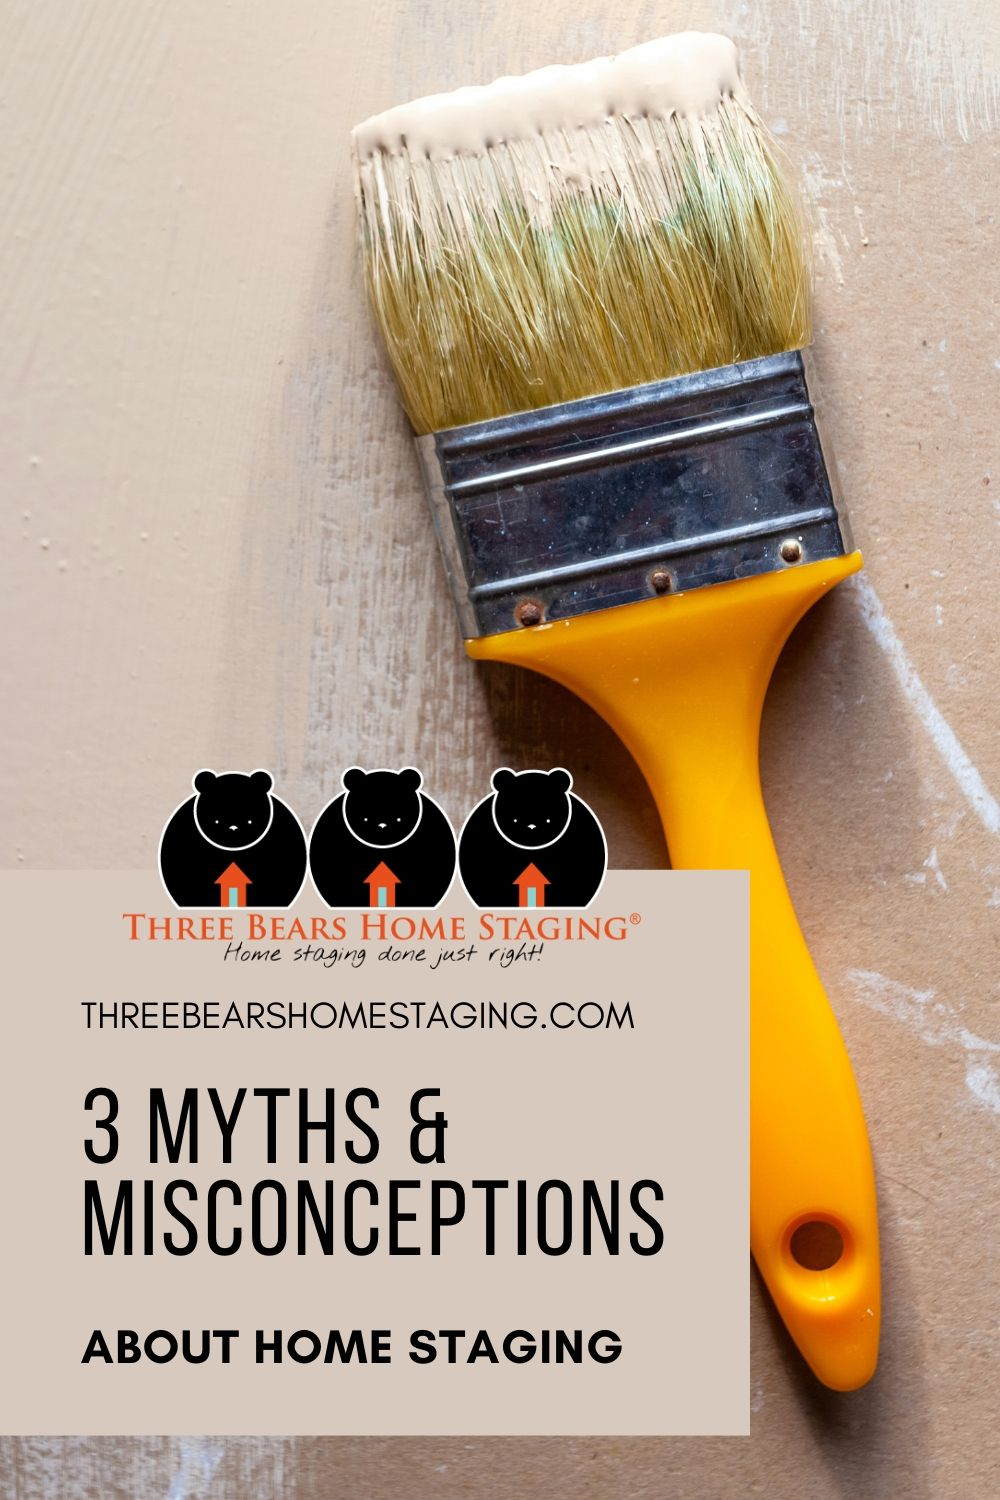 3 Myths & Misconceptions about Home Staging